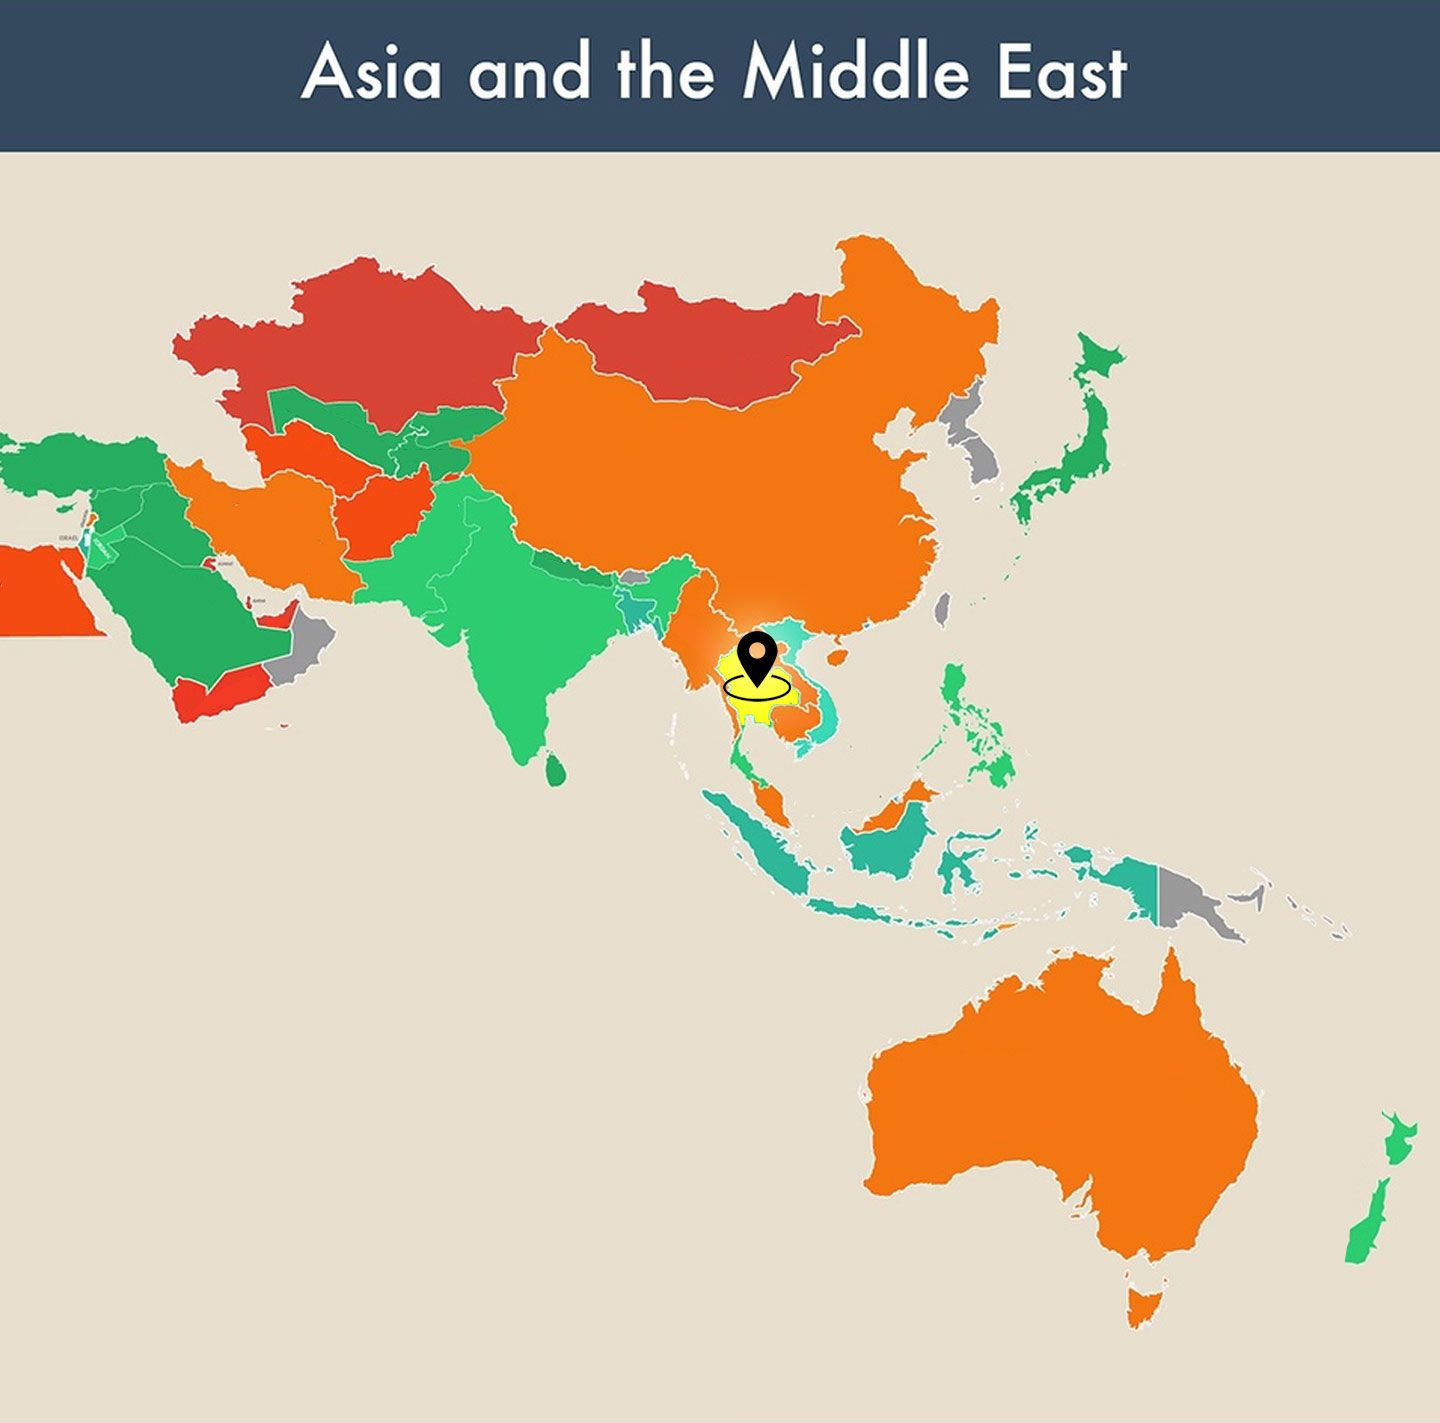 countries of the world empty map - thailand image